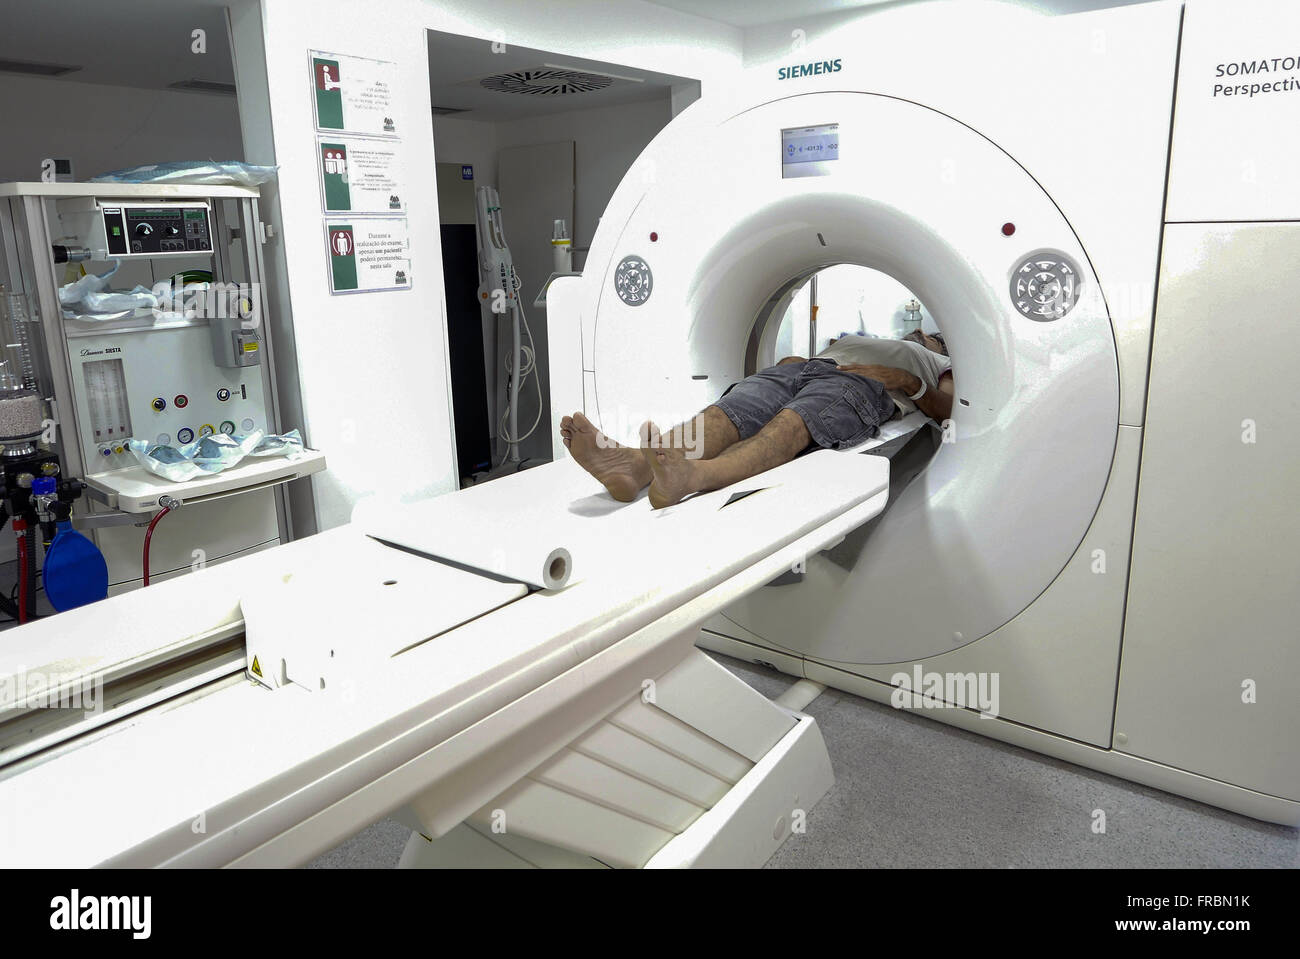 CT examination room in private clinic - Stock Image